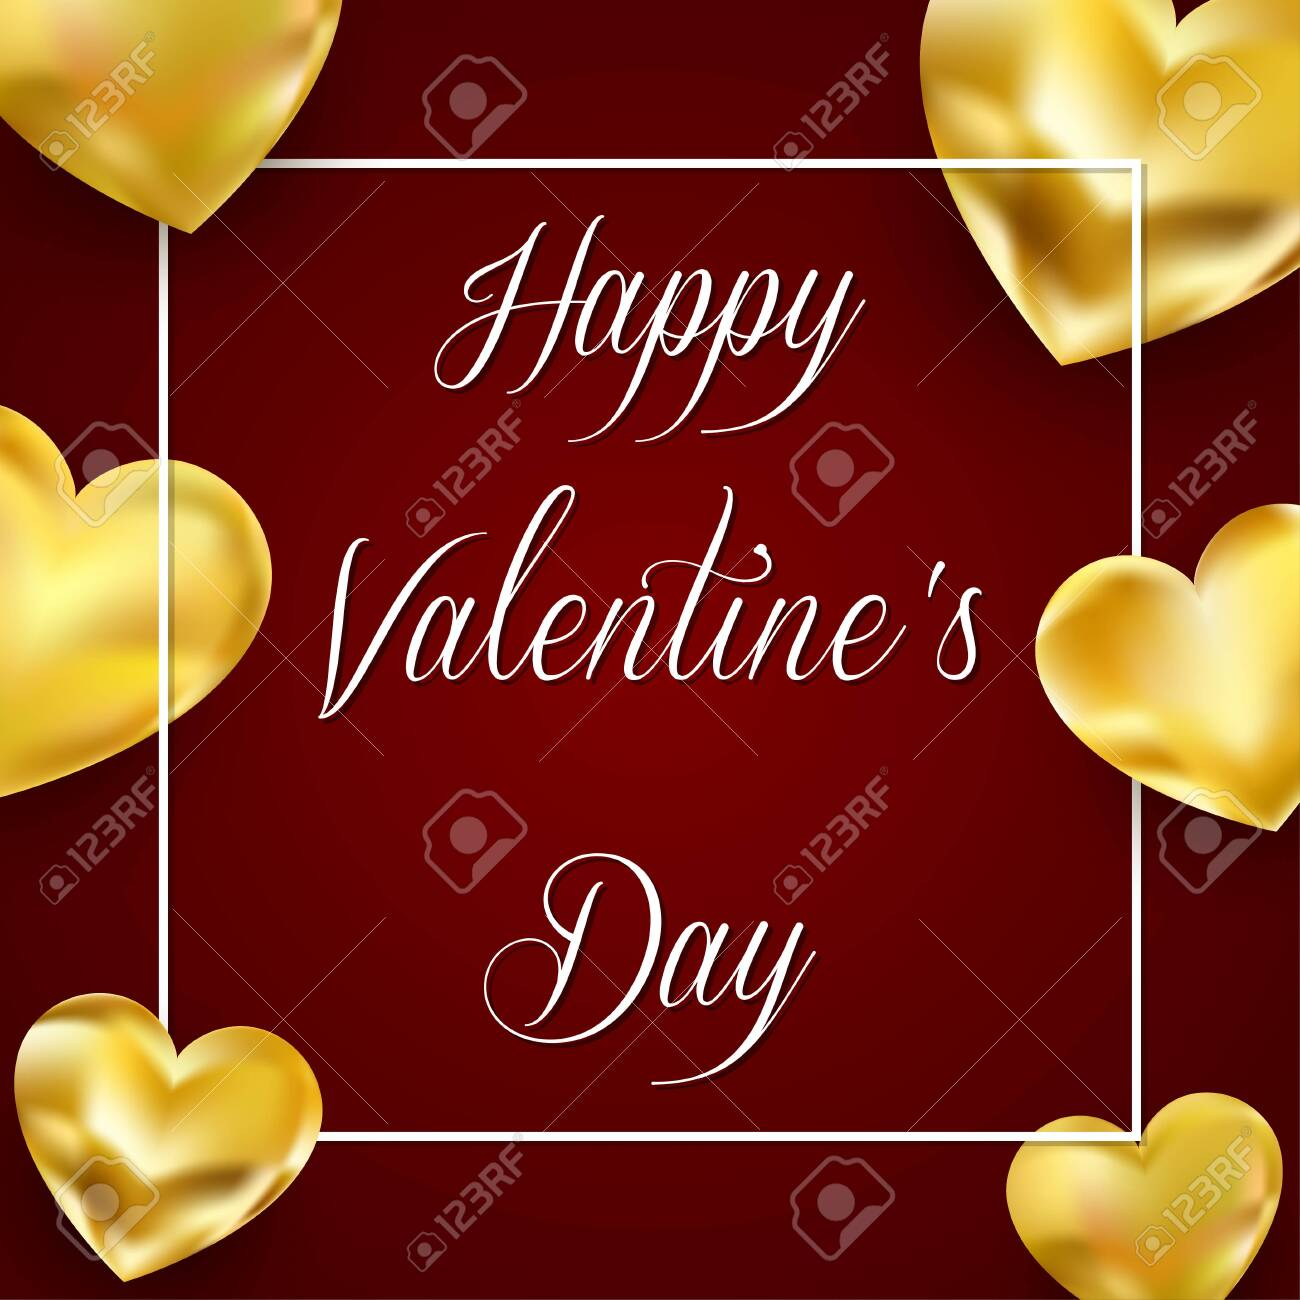 photo stock vector valentines day background with golden hearts and lettering template for valentine s day design vecto